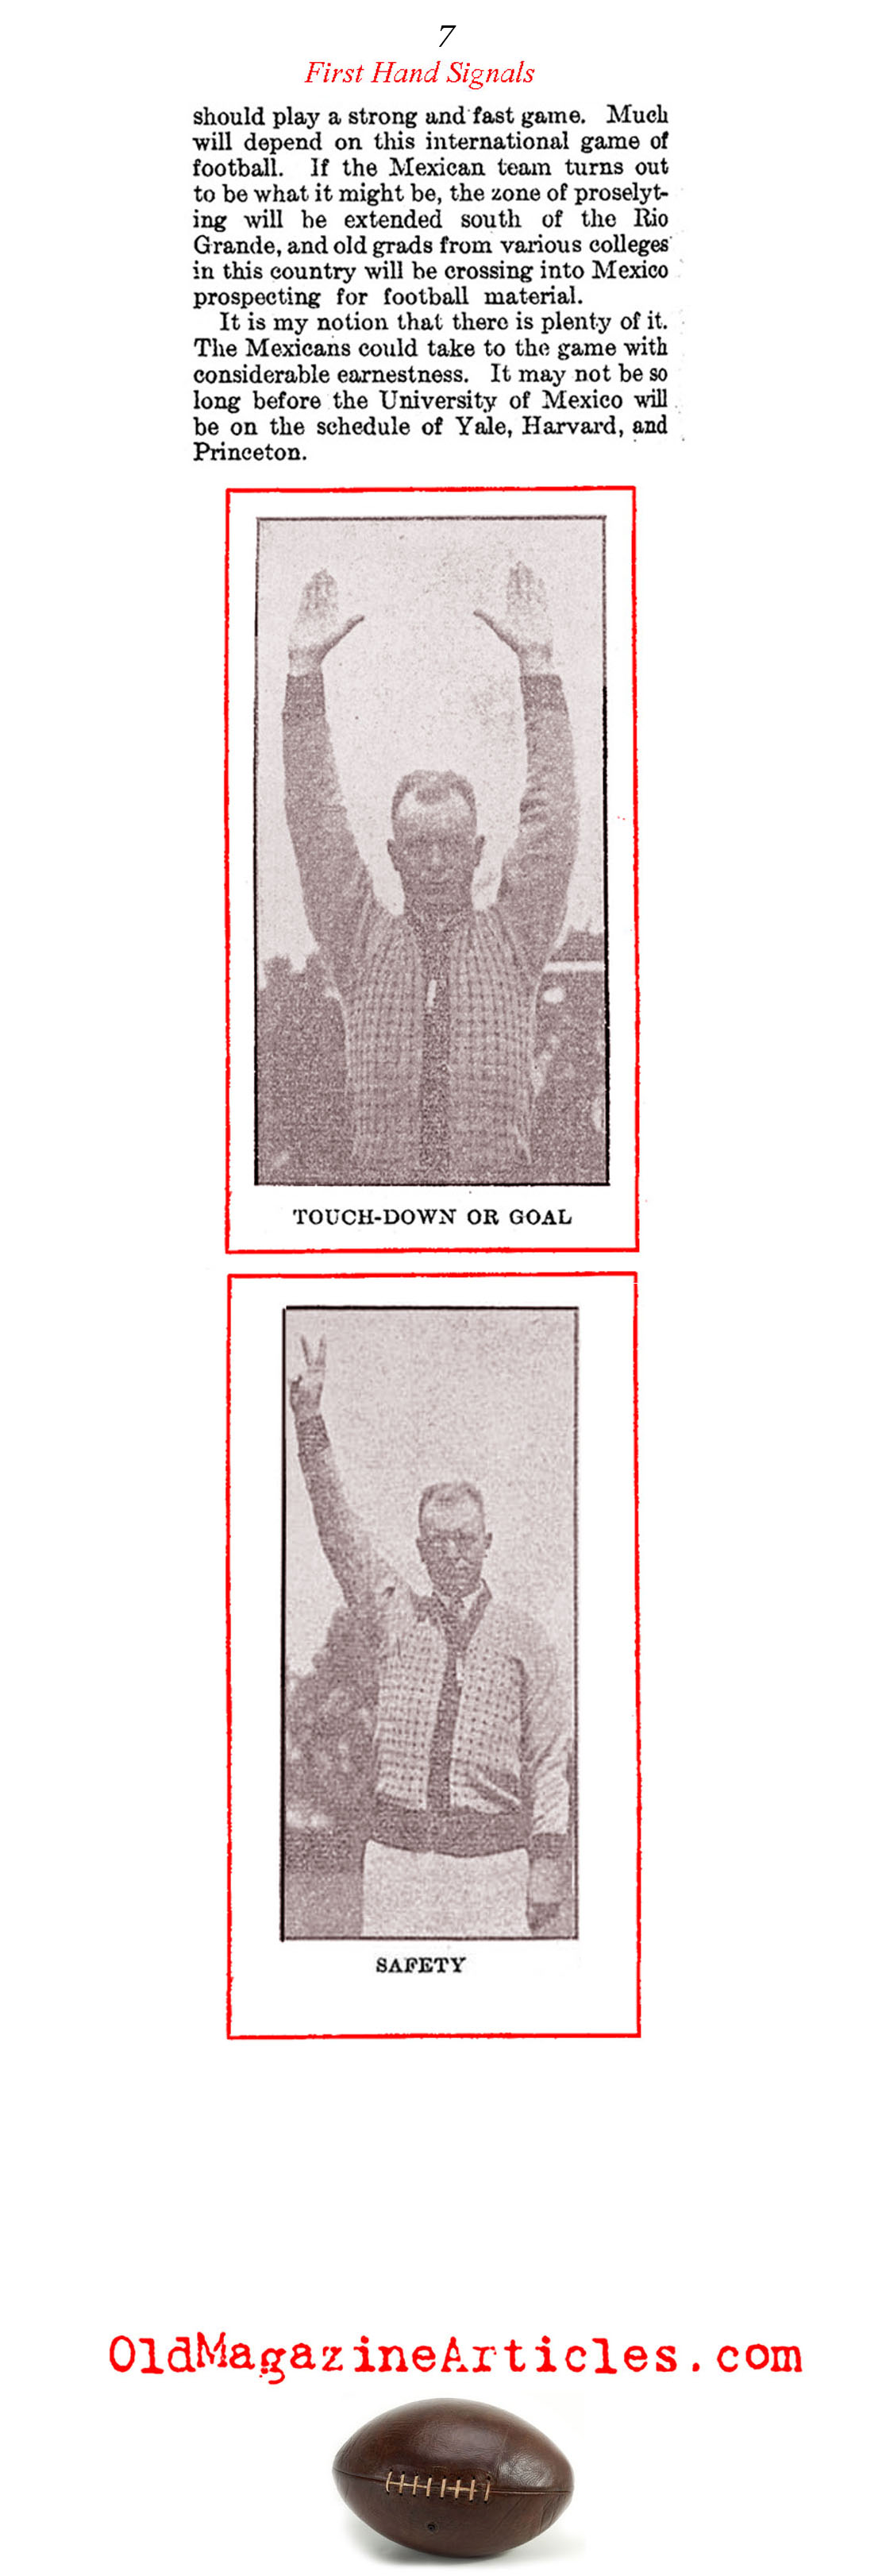 The Very First Football Referee Hand Signals (Literary Digest, 1929)